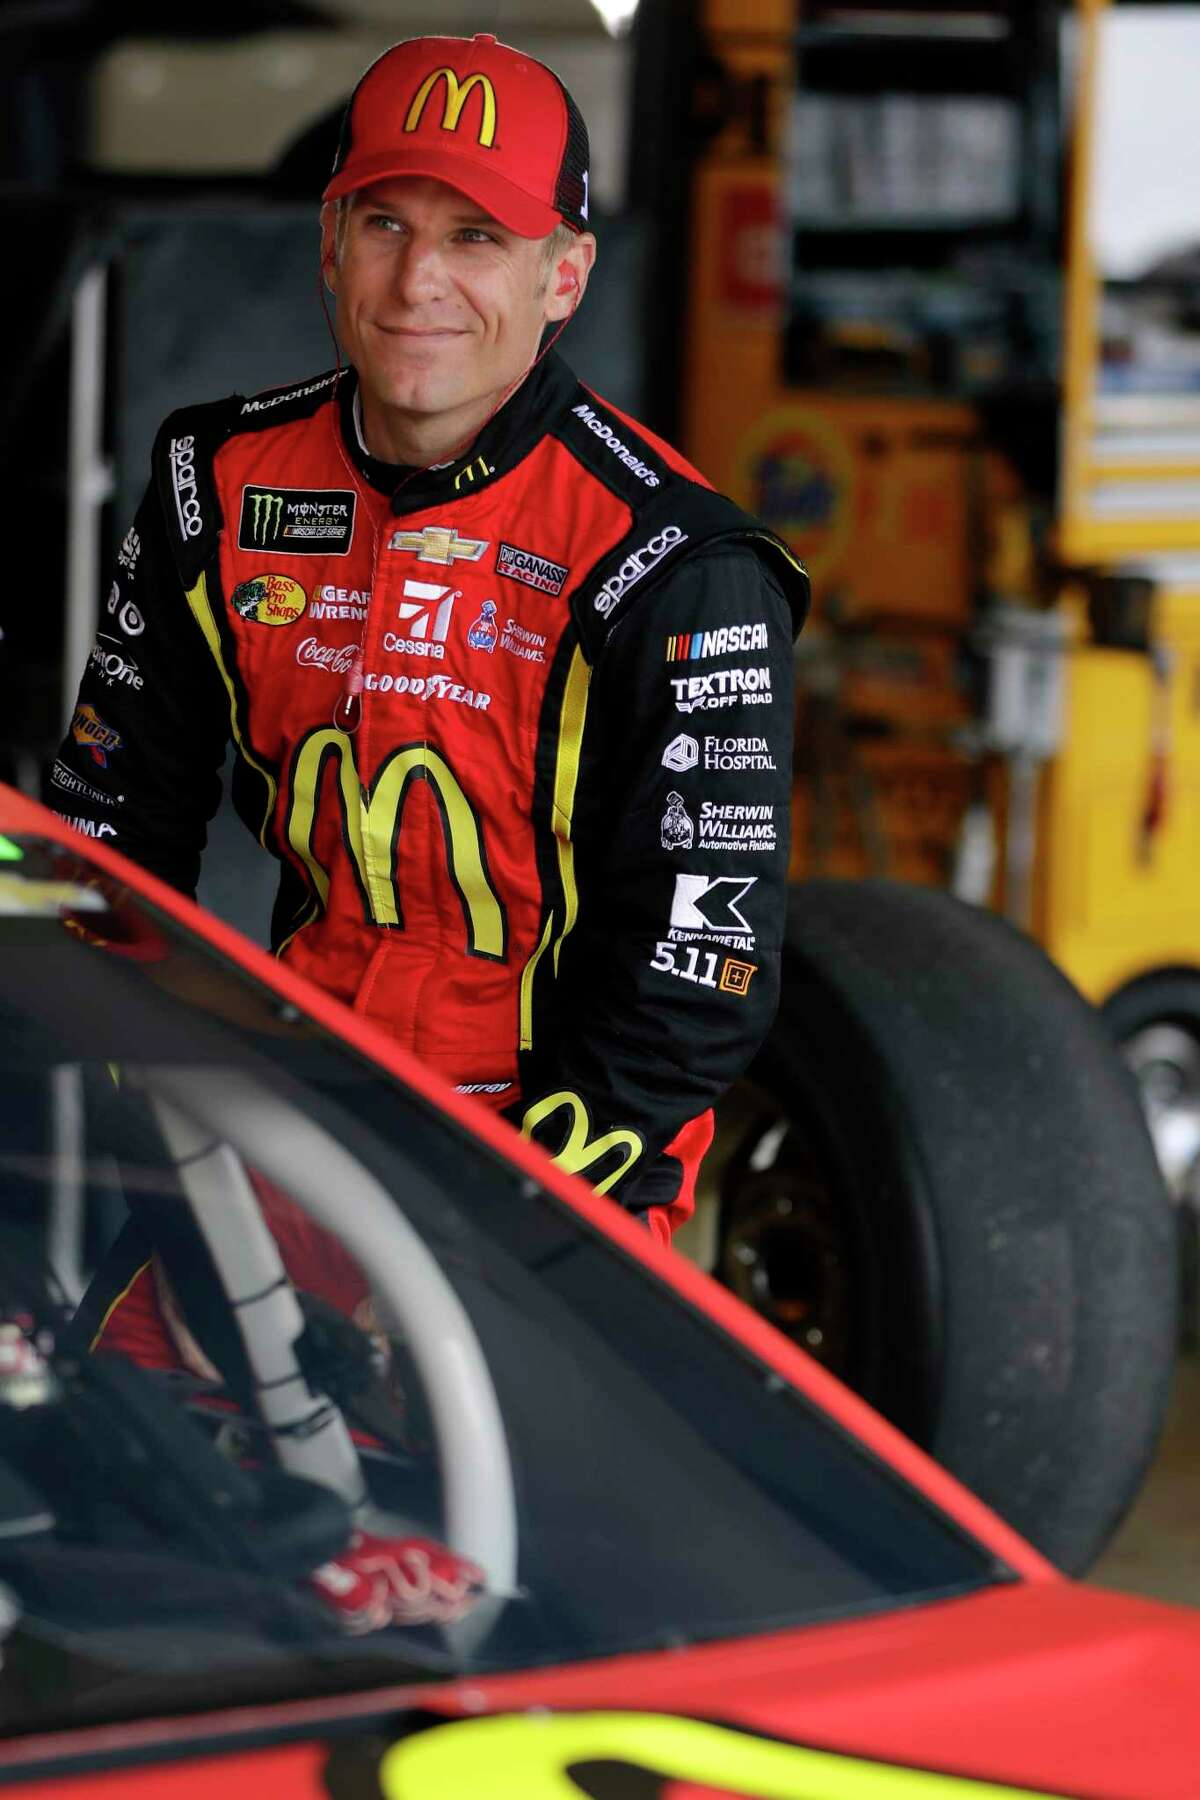 Jamie McMurray climbs into his car for practice for Sunday's NASCAR Cup Series auto race, Saturday, Aug. 5, 2017, in Watkins Glen, N.Y. (AP Photo/Matt Slocum)